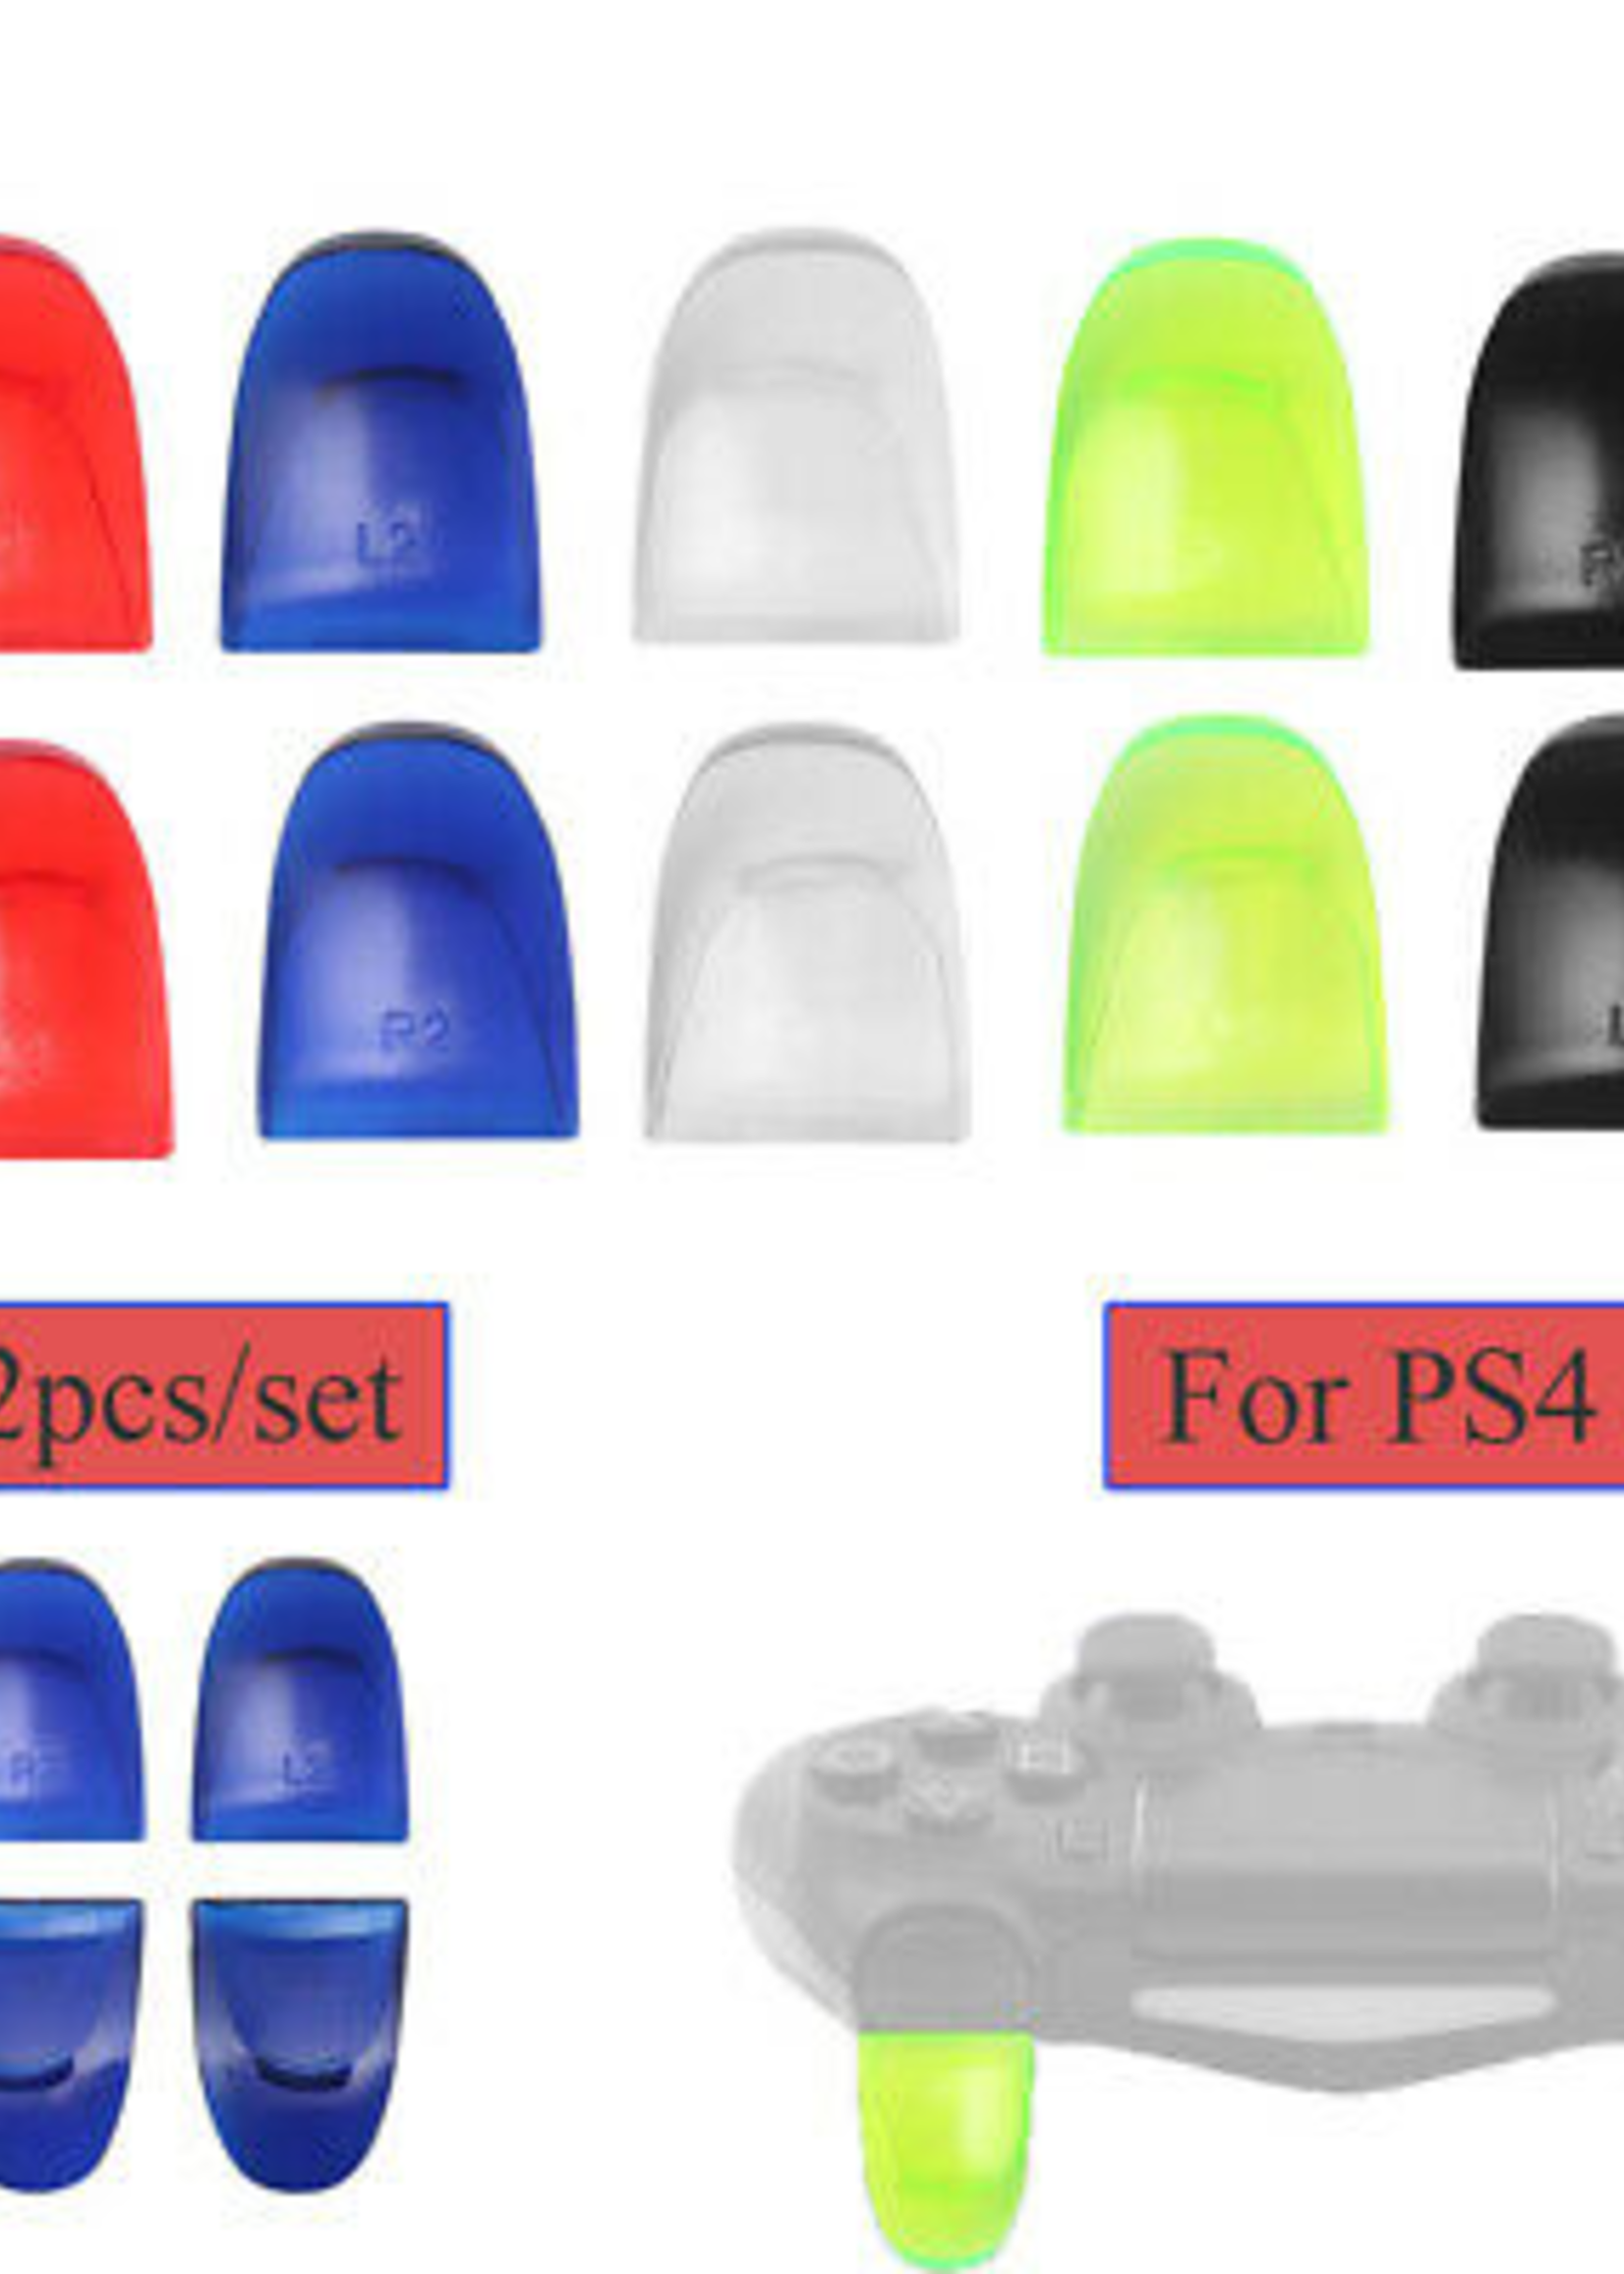 ACC-PS4 Pro Trigger Extenders 2G (CUH-ZCT2) (Blue / Red)